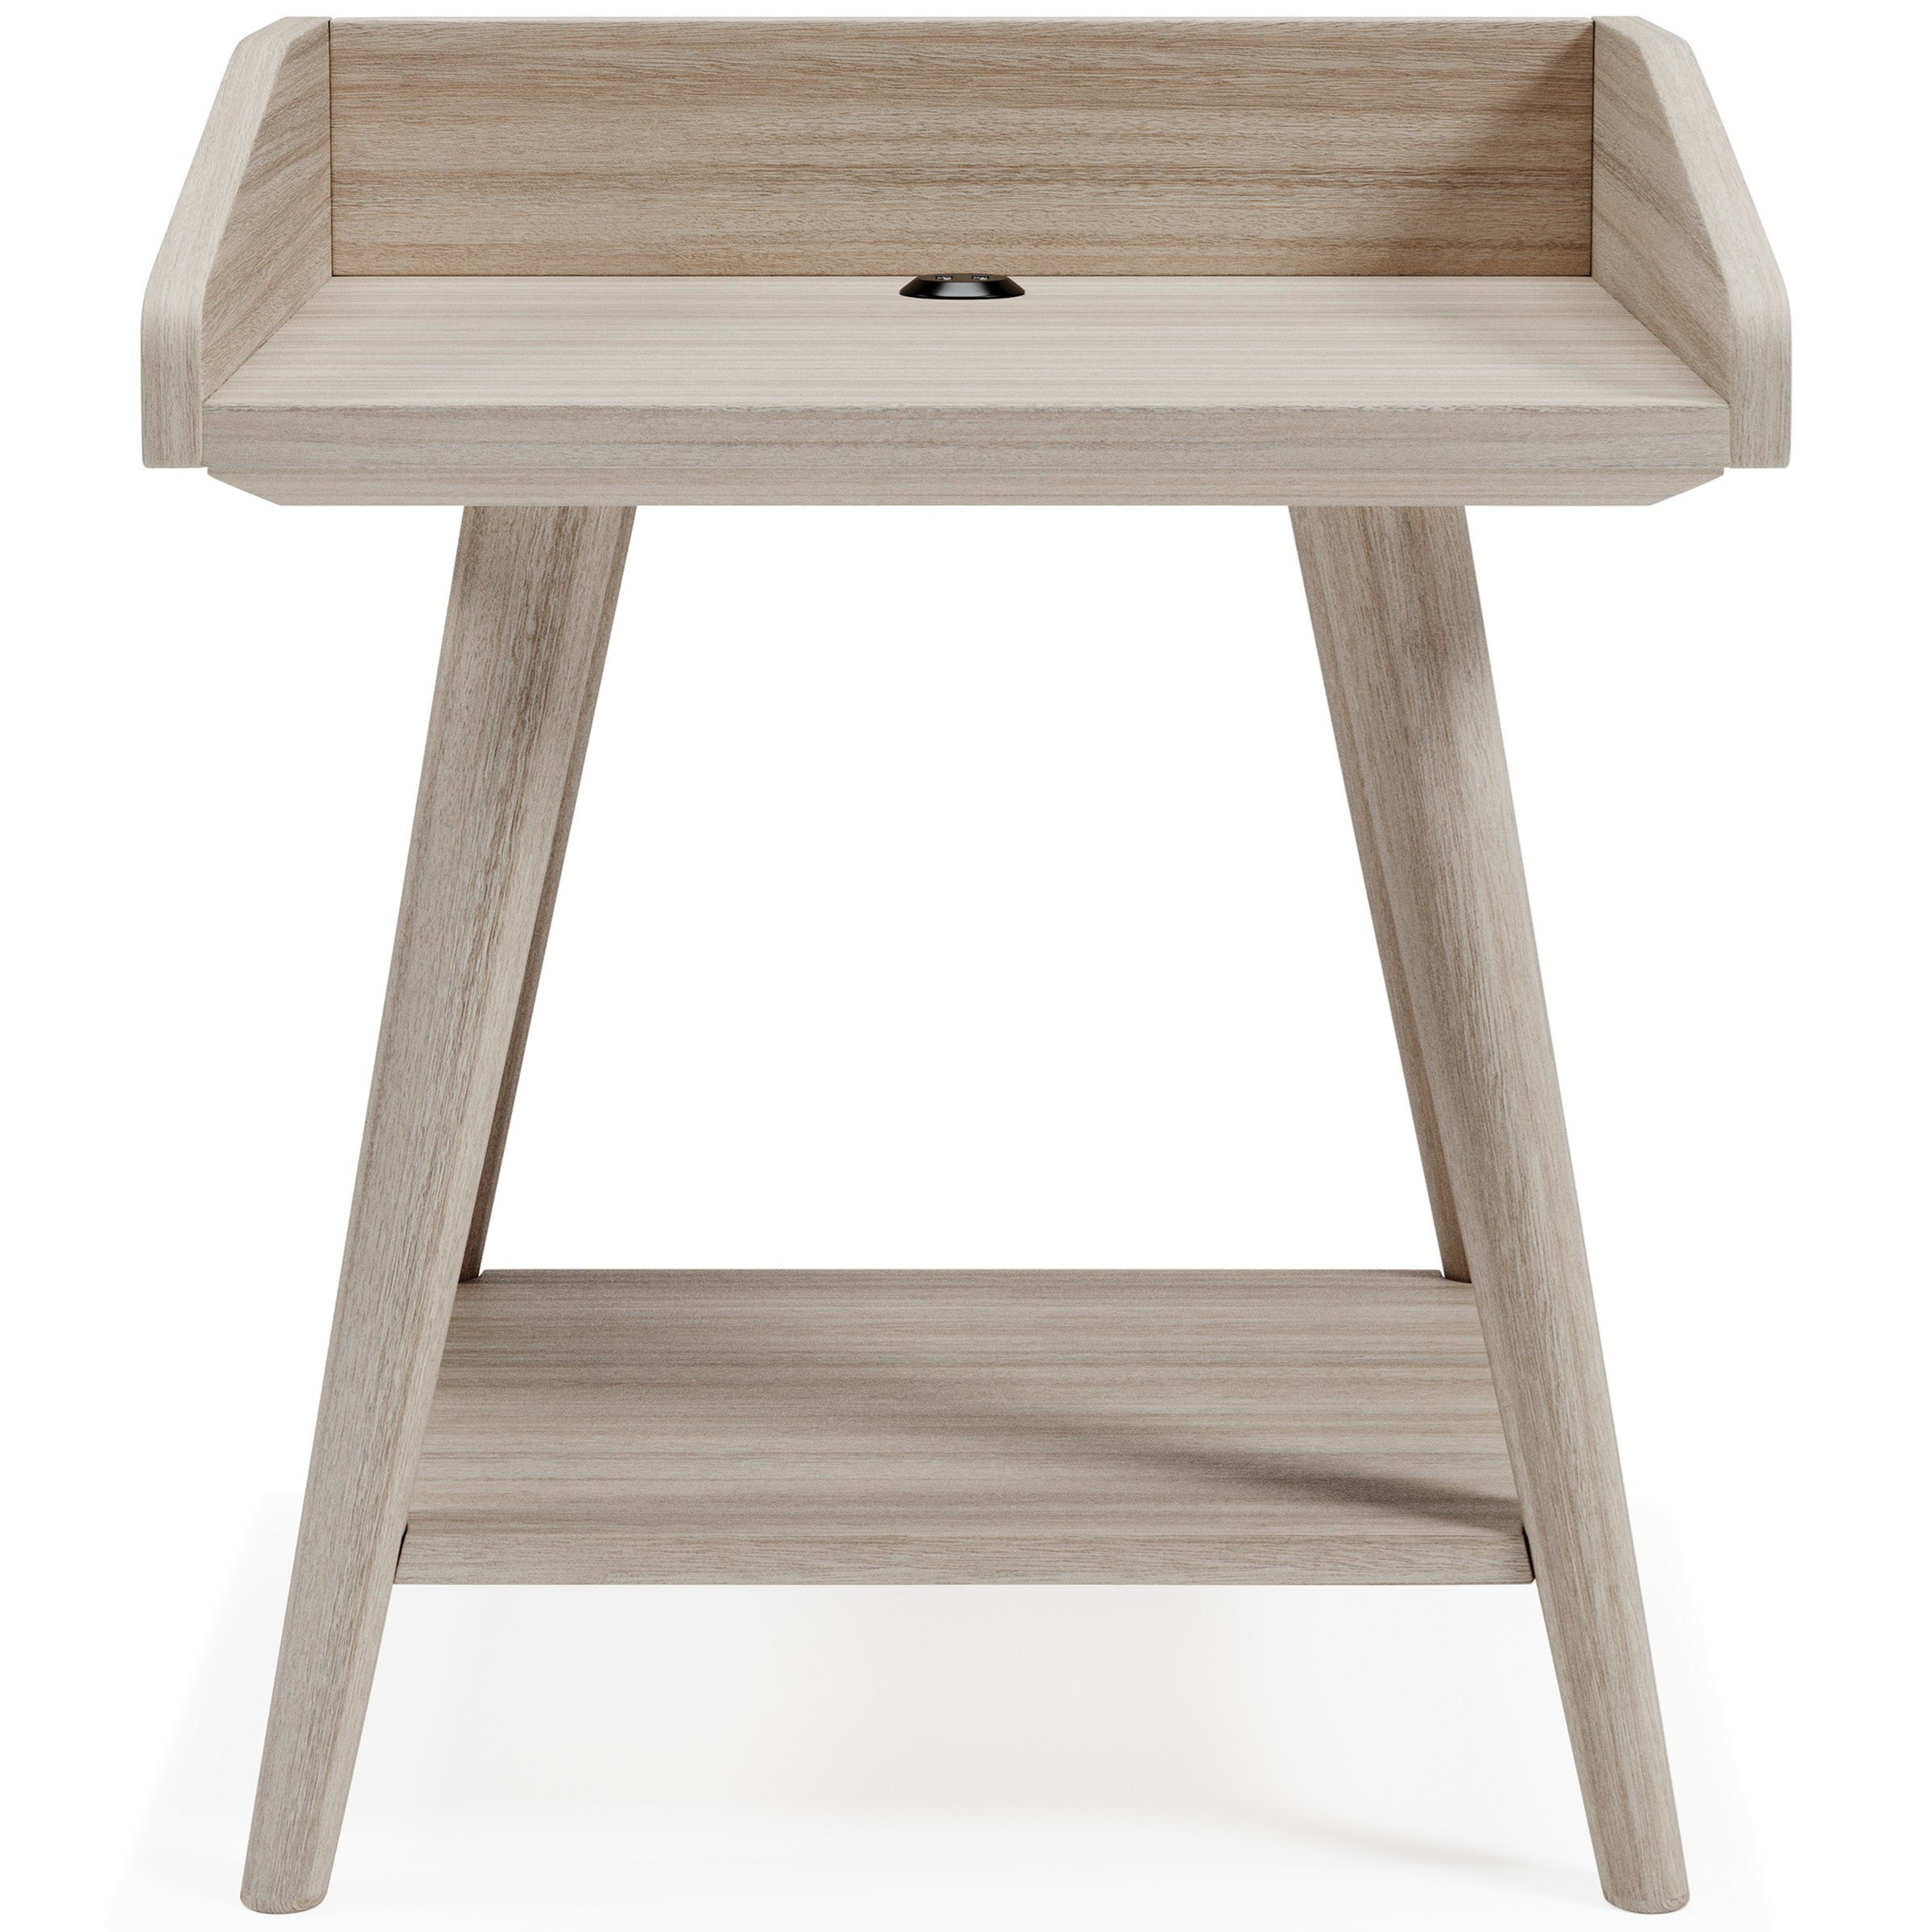 Blariden Accent Table by Ashley (Signature Design) at Johnny Janosik